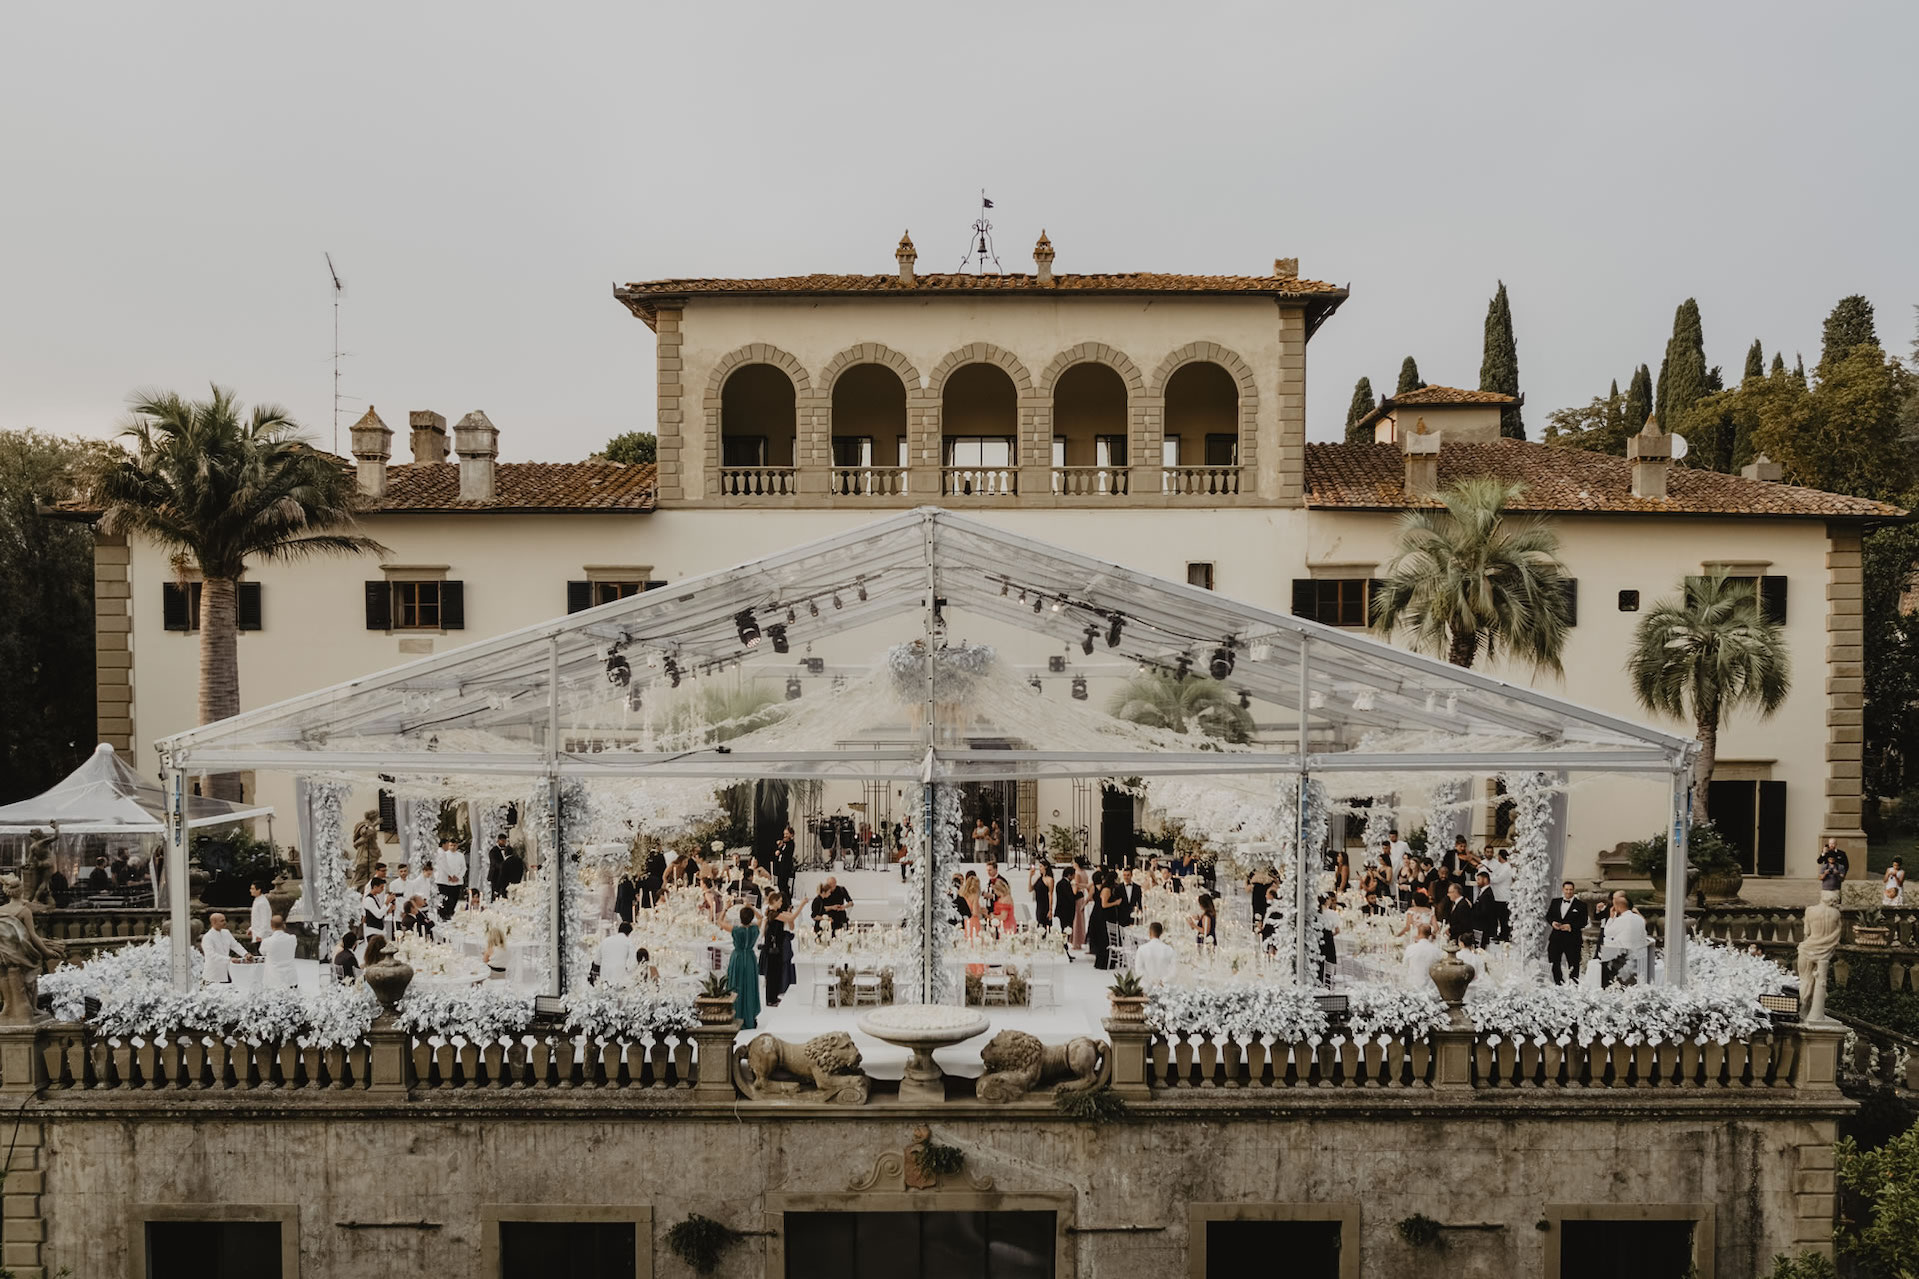 A sparkling wedding in the shore of the Arno - 76 :: A sparkling wedding on the shore of the Arno :: Luxury wedding photography - 75 :: A sparkling wedding in the shore of the Arno - 76